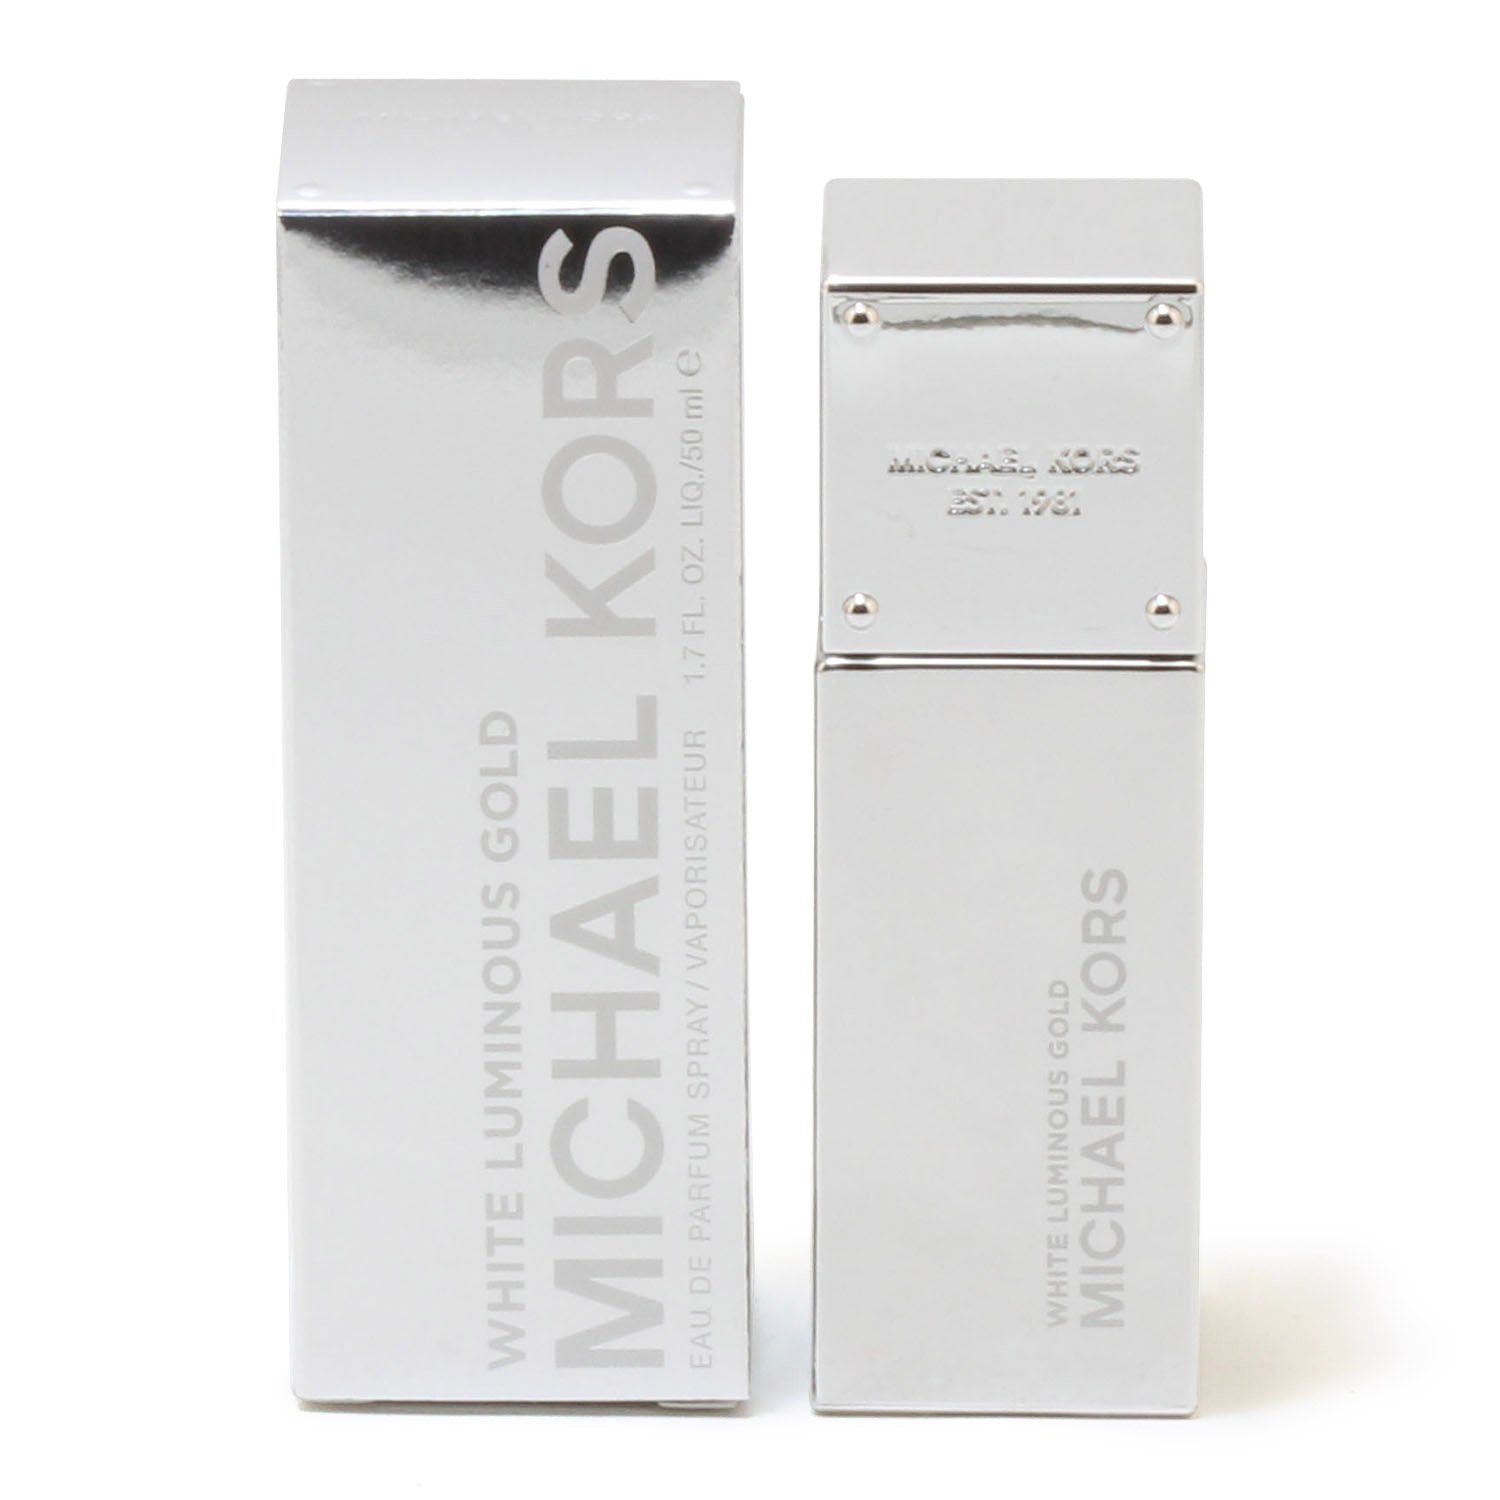 Perfume - MICHAEL KORS WHITE LUMINOUS GOLD FOR WOMEN - EAU DE PARFUM SPRAY, 1.7 OZ